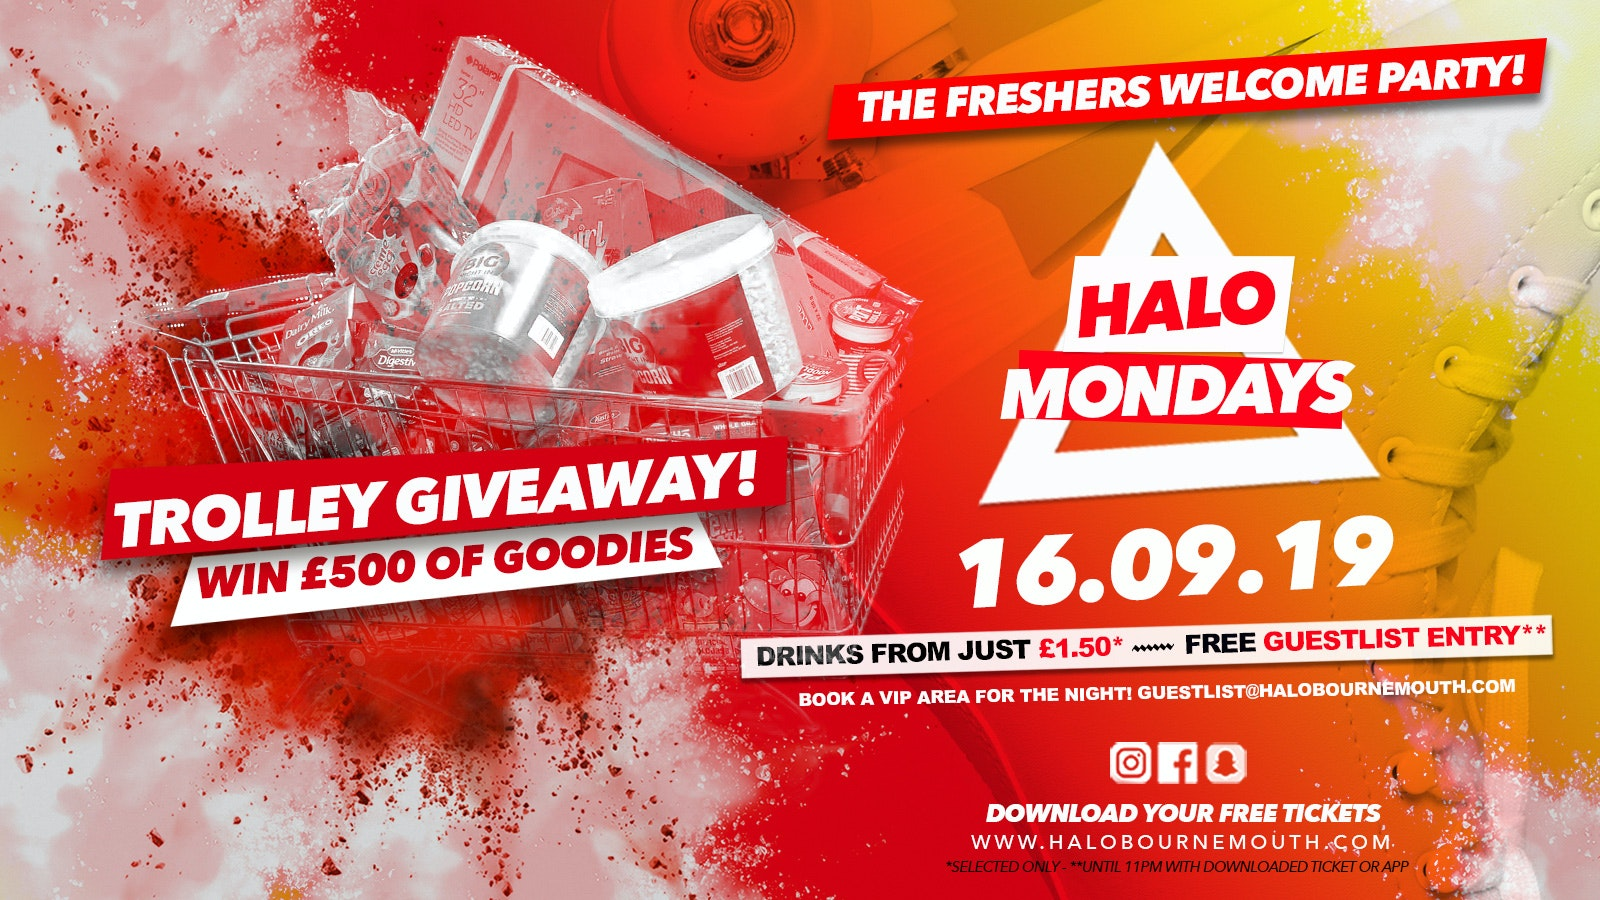 Halo Mondays 16.09 //// Drinks from £1.50 – Bournemouth's Biggest Student Night